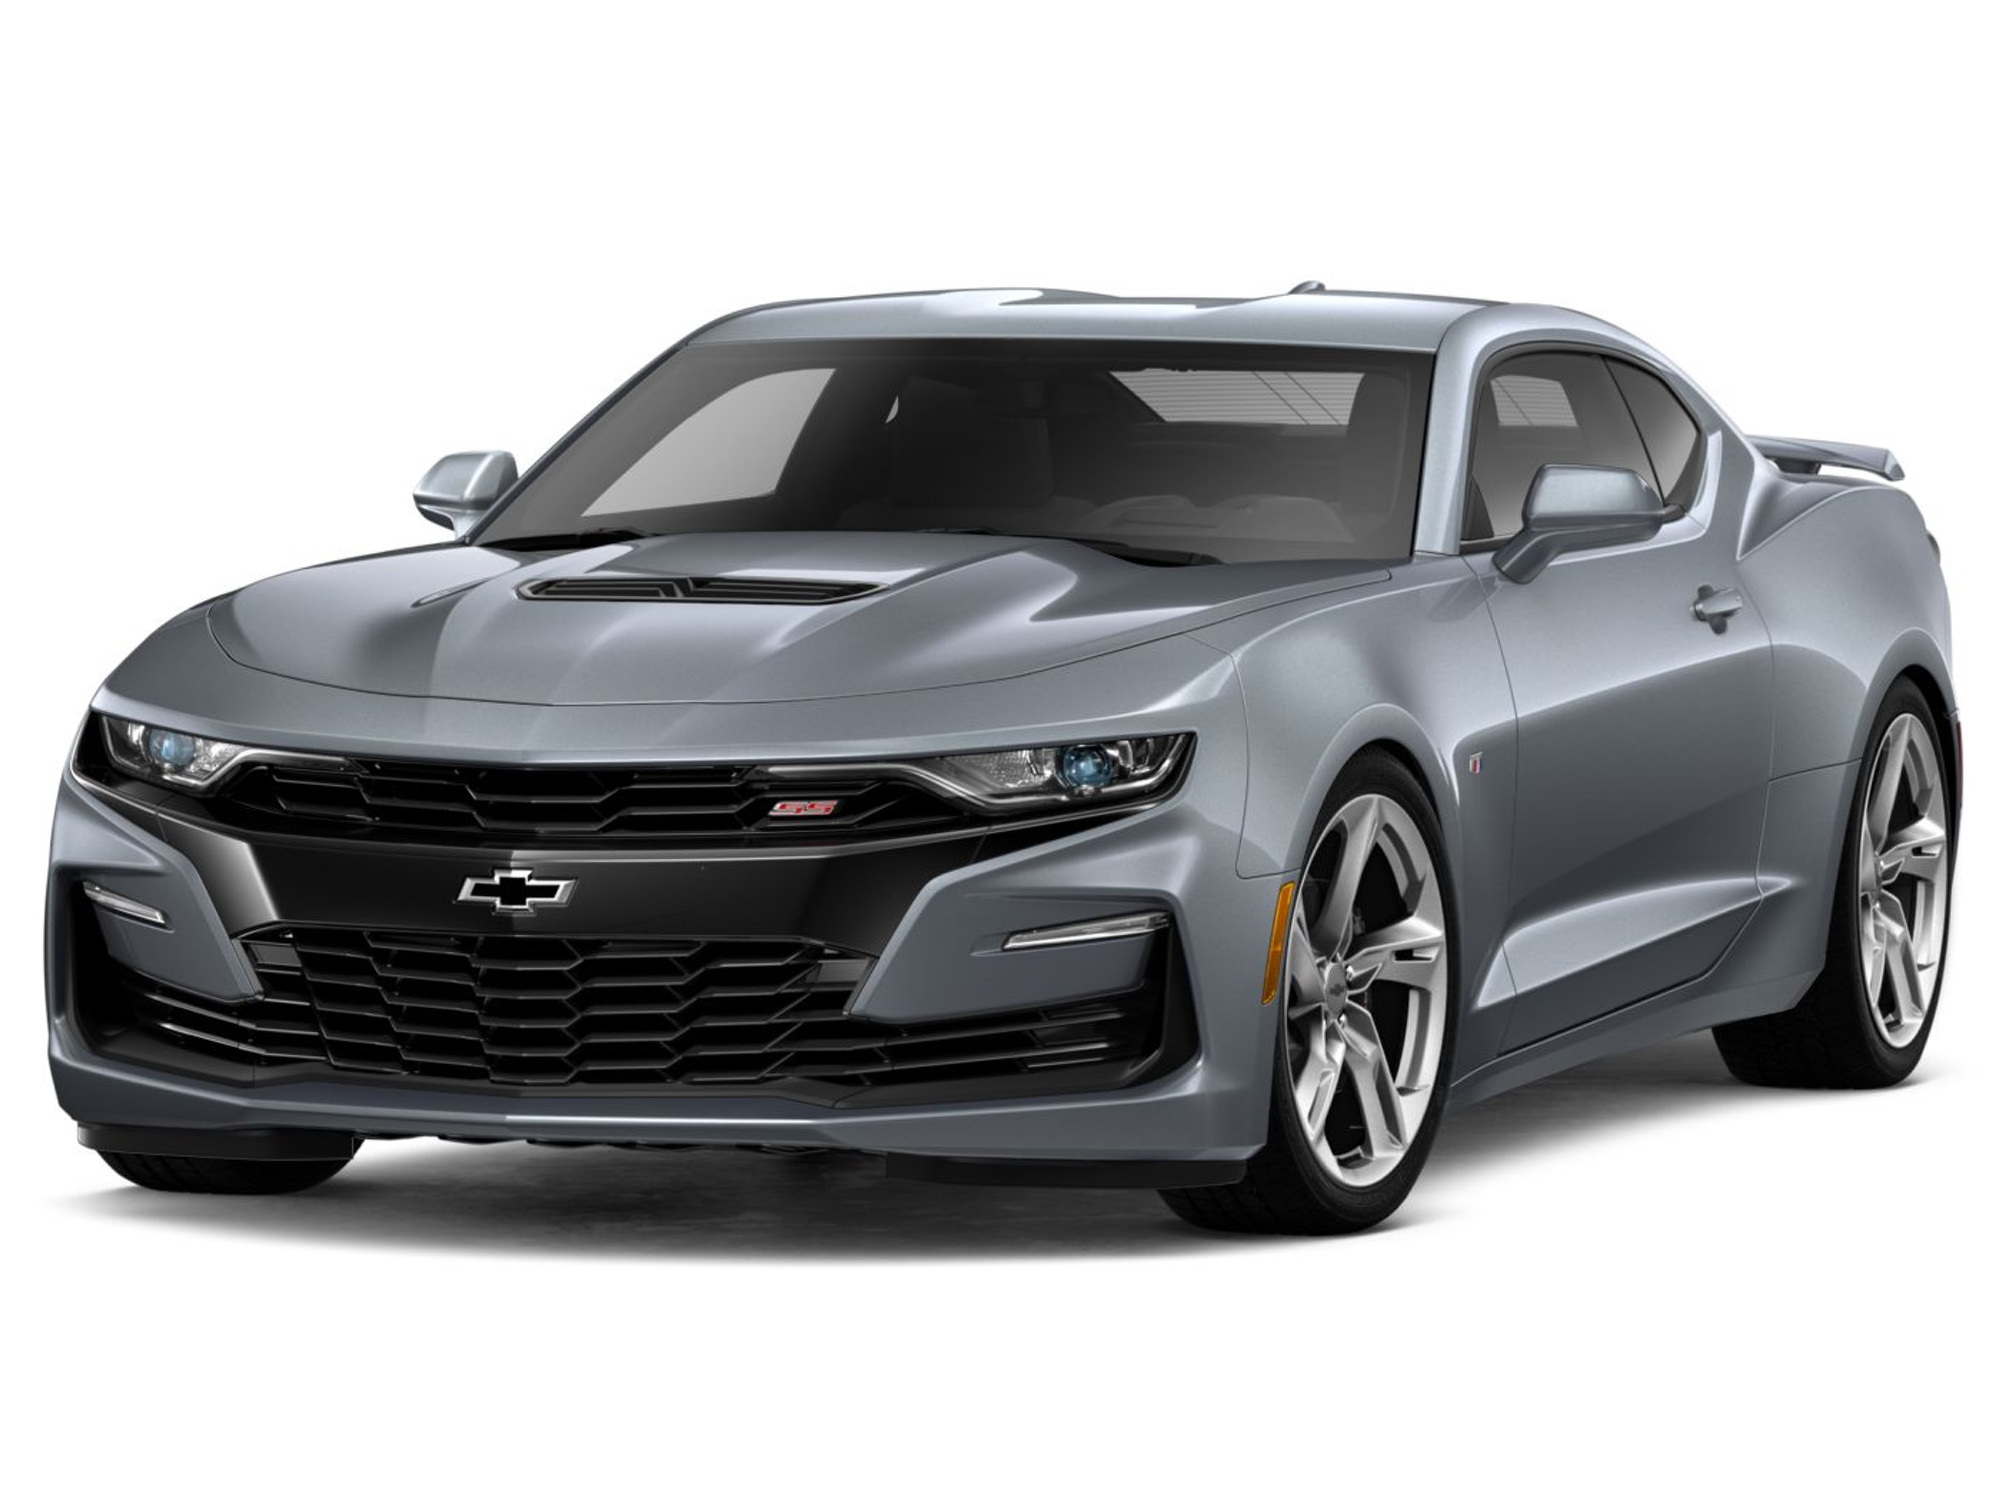 2019 Chevrolet Camaro Exterior Colors | GM Authority